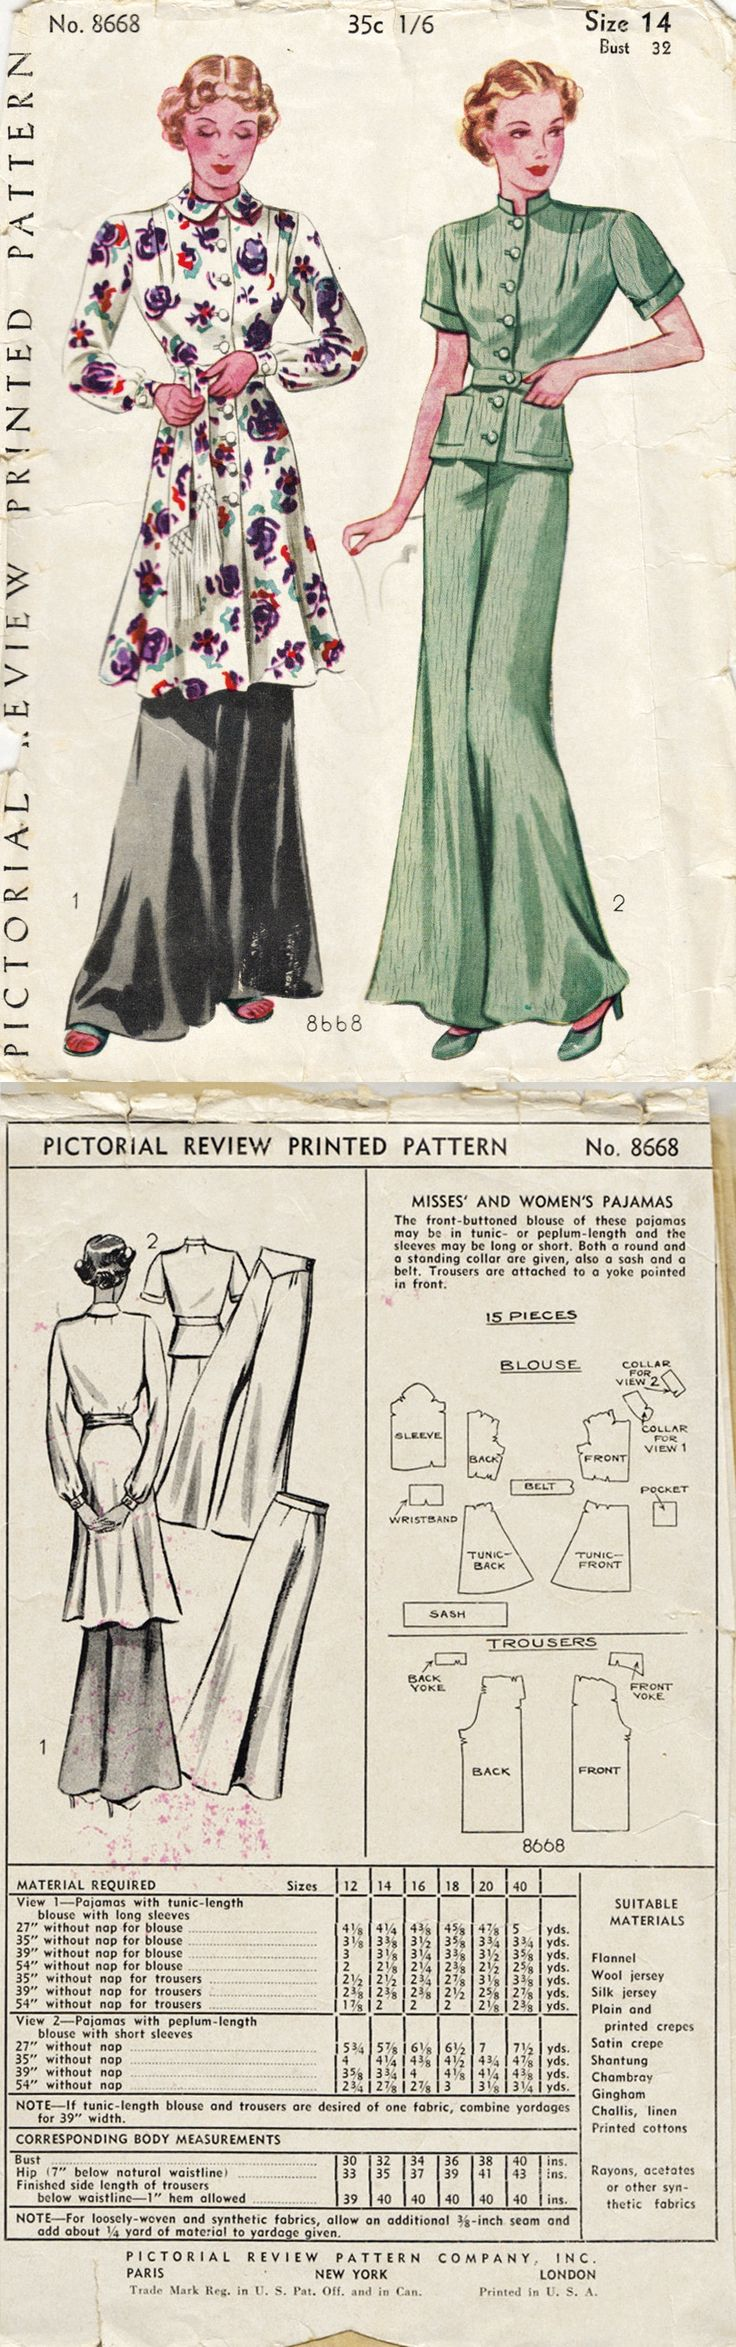 Ladies Pajama Set 1930s Pictorial 8668 pant suit wide legged tunic shirt blouse casual hostess 40s green floral black red purple white color fashion illustration sewing pattern